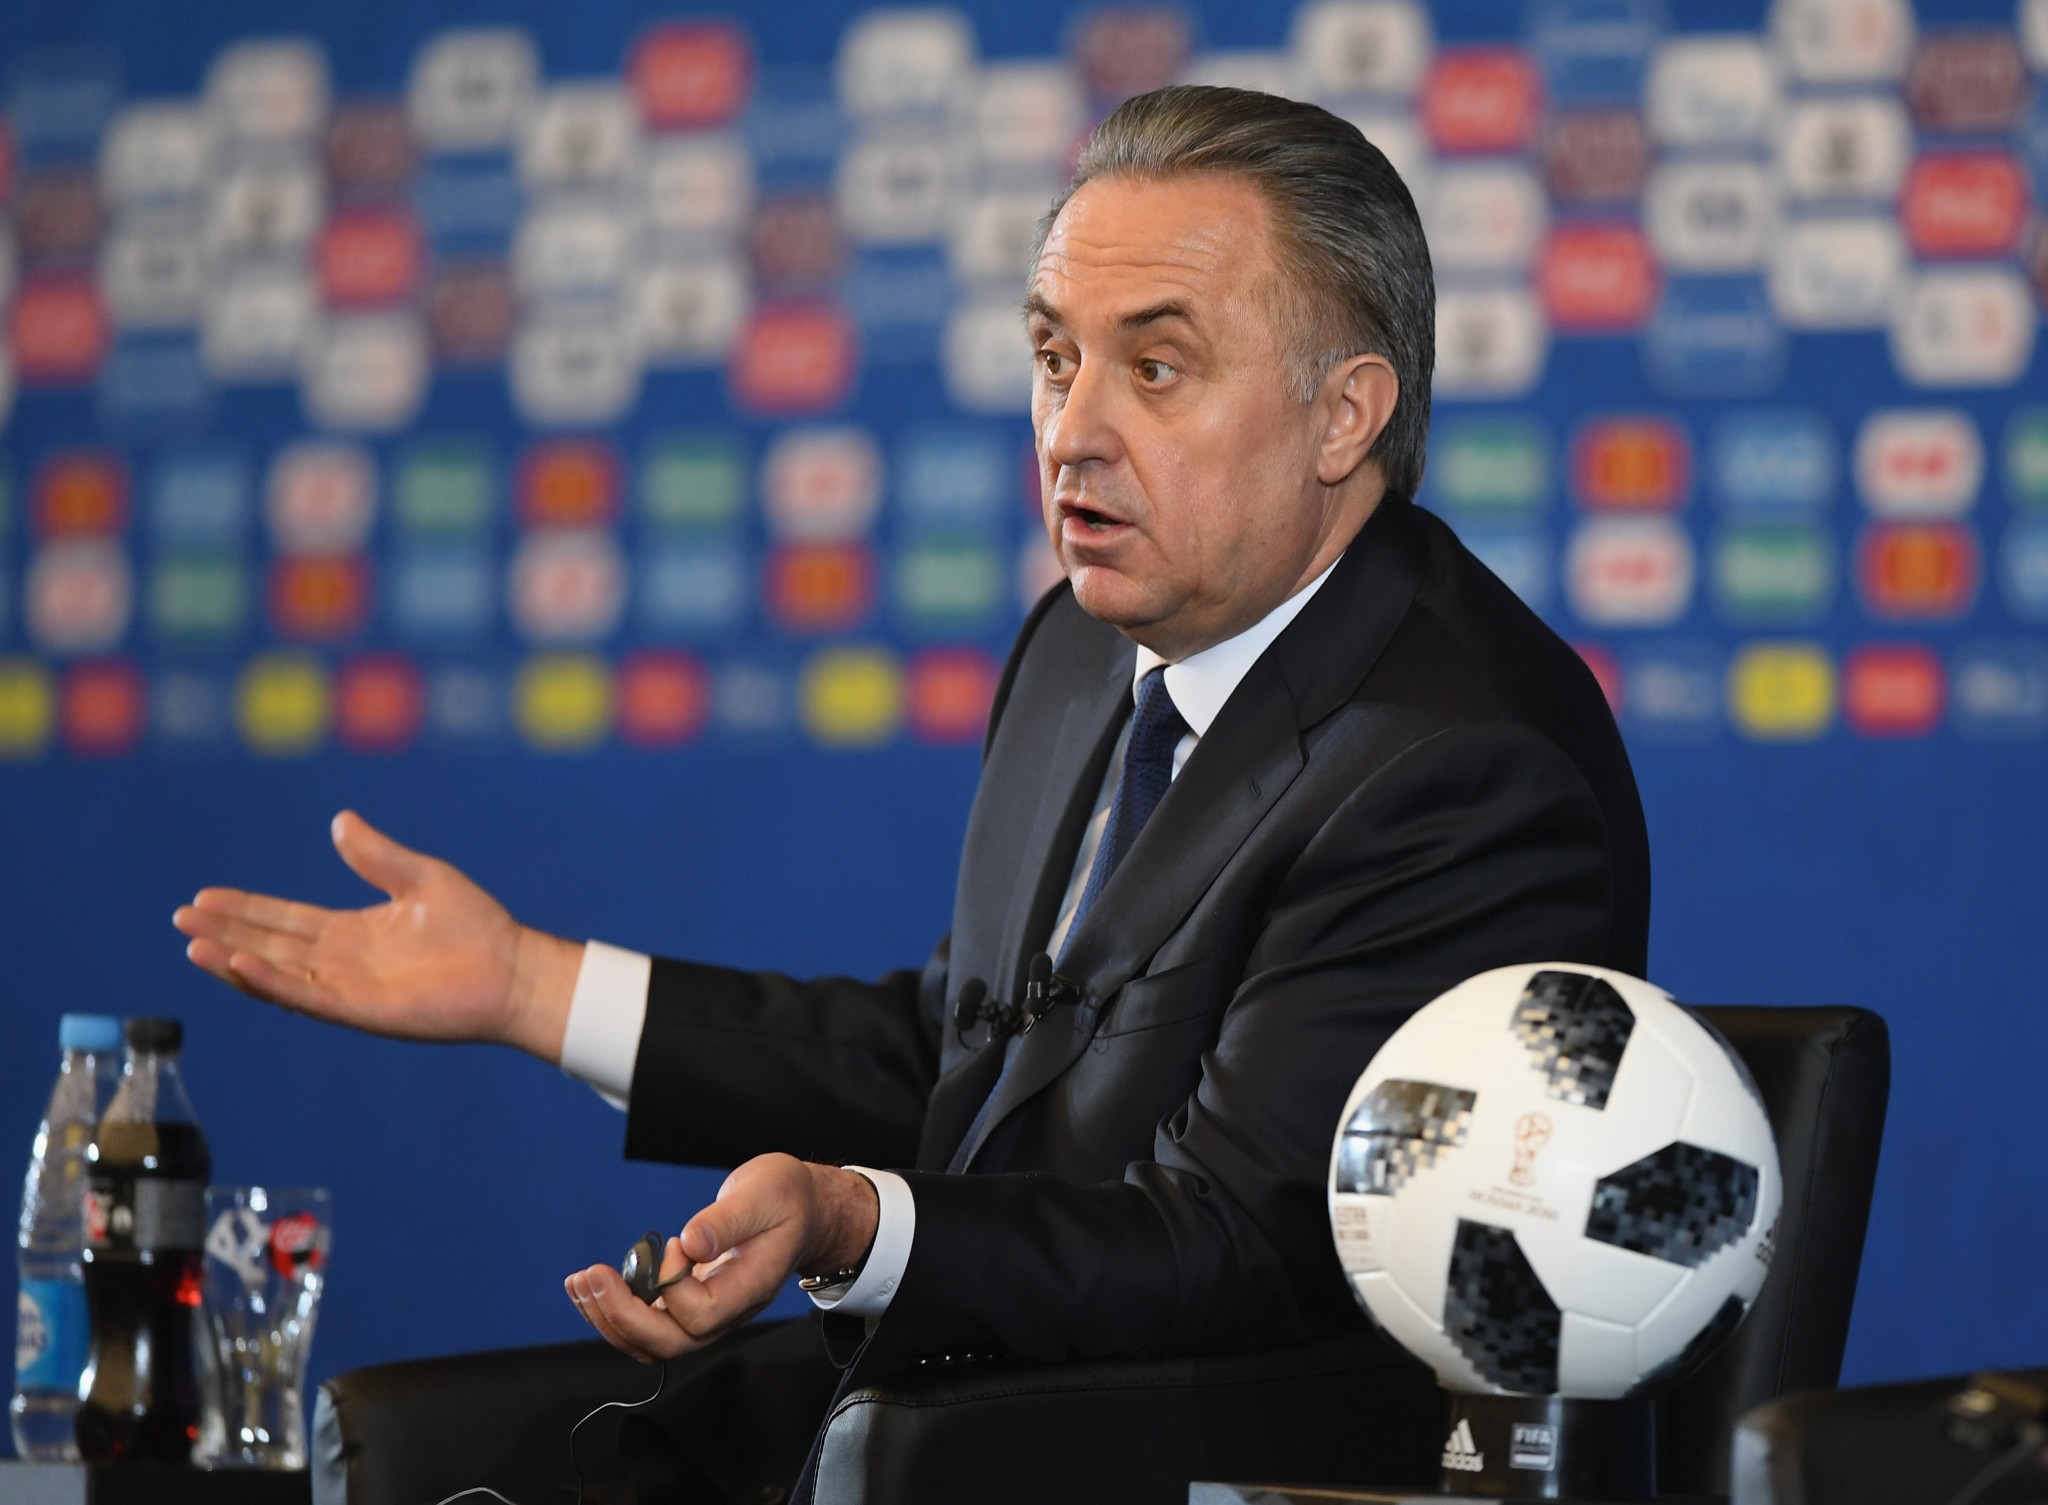 Russian Deputy Prime Minister Vitaly Mutko has called on the IOC to use their common sense in their impending decision on Russia ©Getty Images